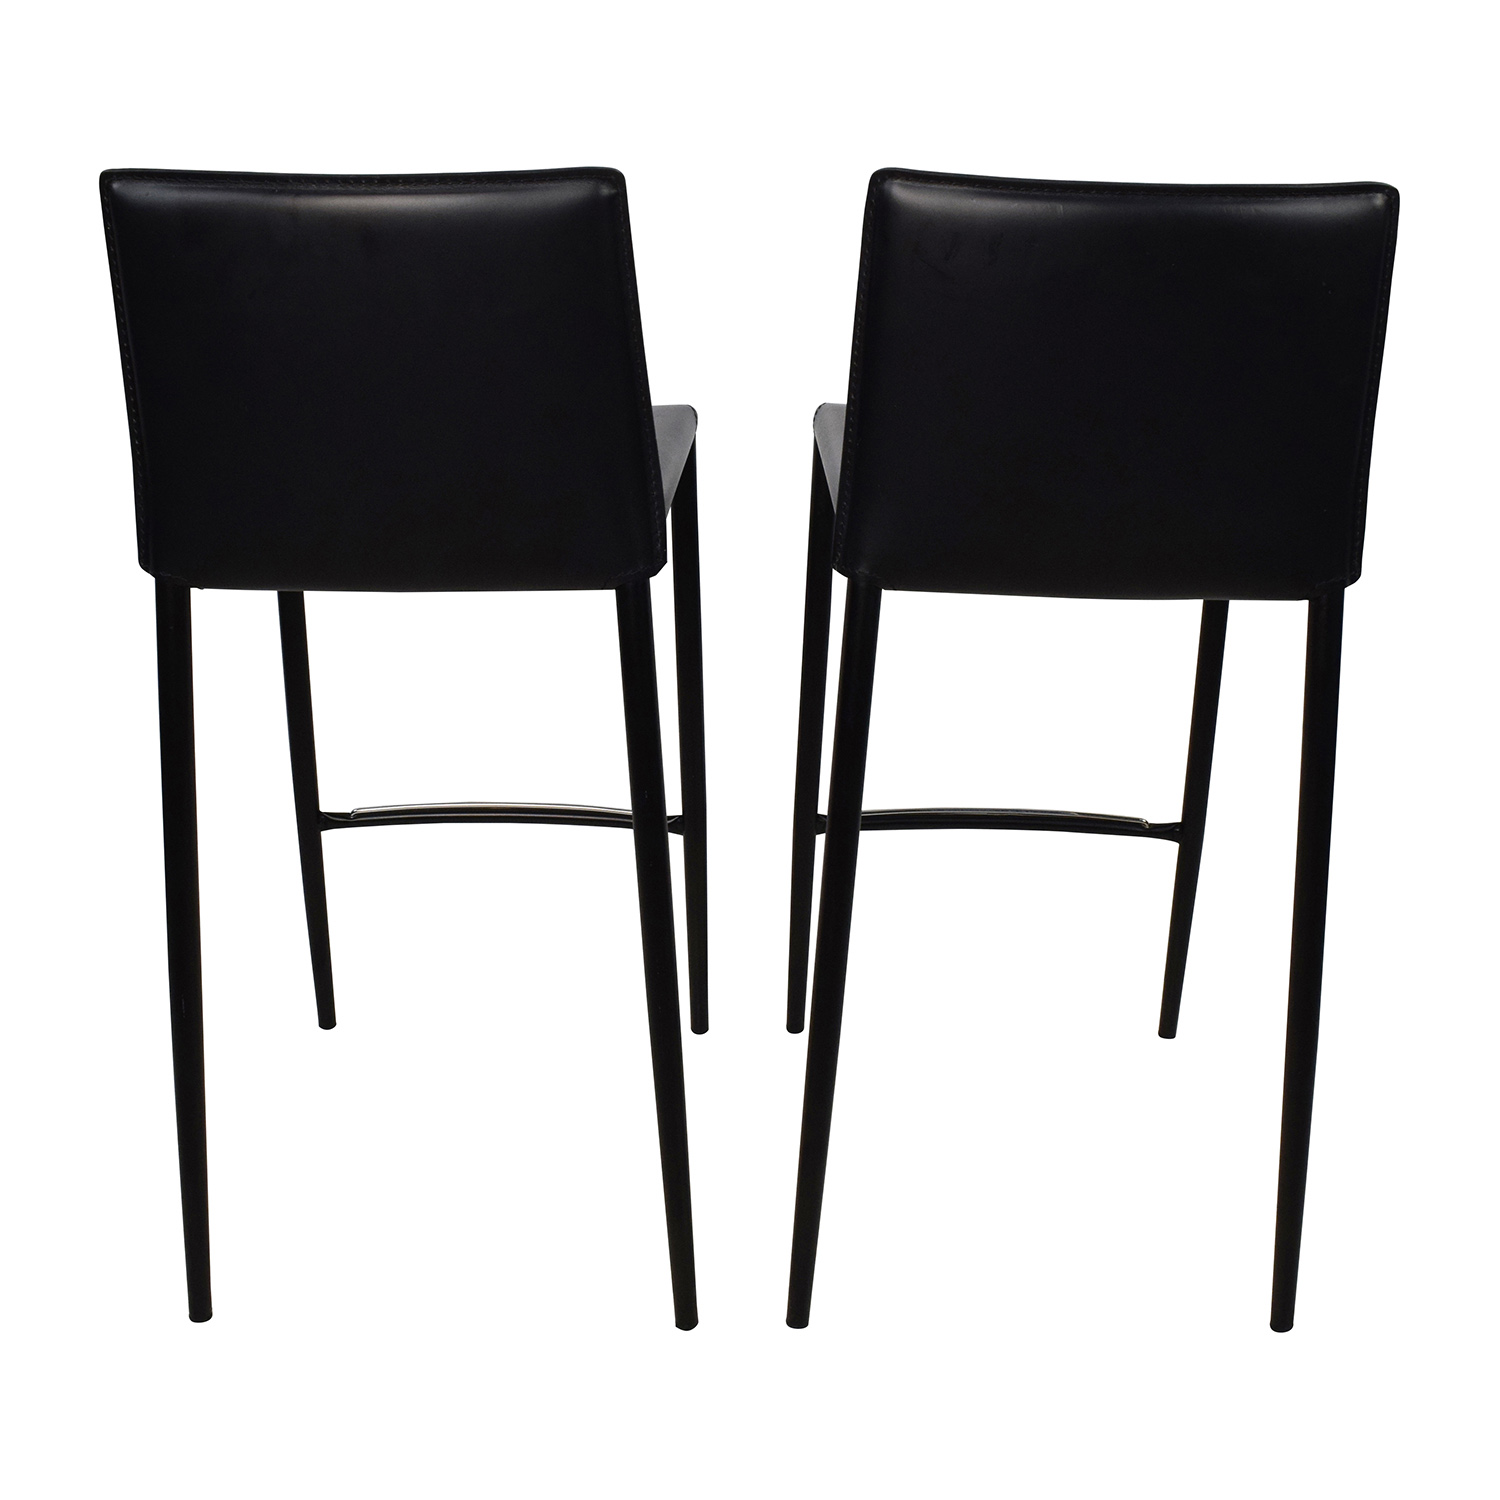 ... Buy Calligaris Calligaris Boheme Black Leather Bar Stool Set Online ...